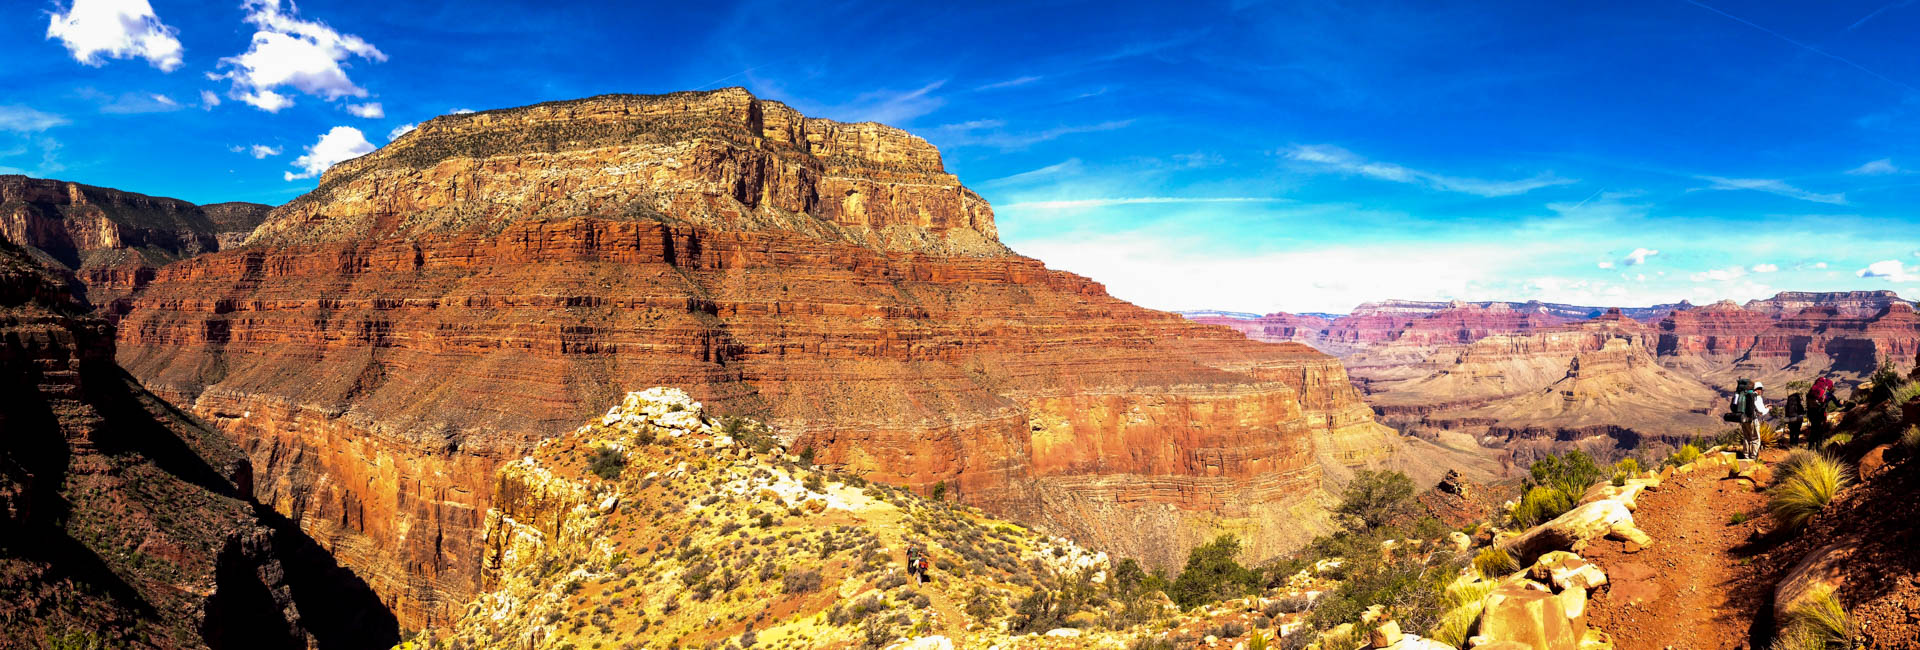 Hikers head down the trail on a self guided backpacking trip in Grand Canyon.